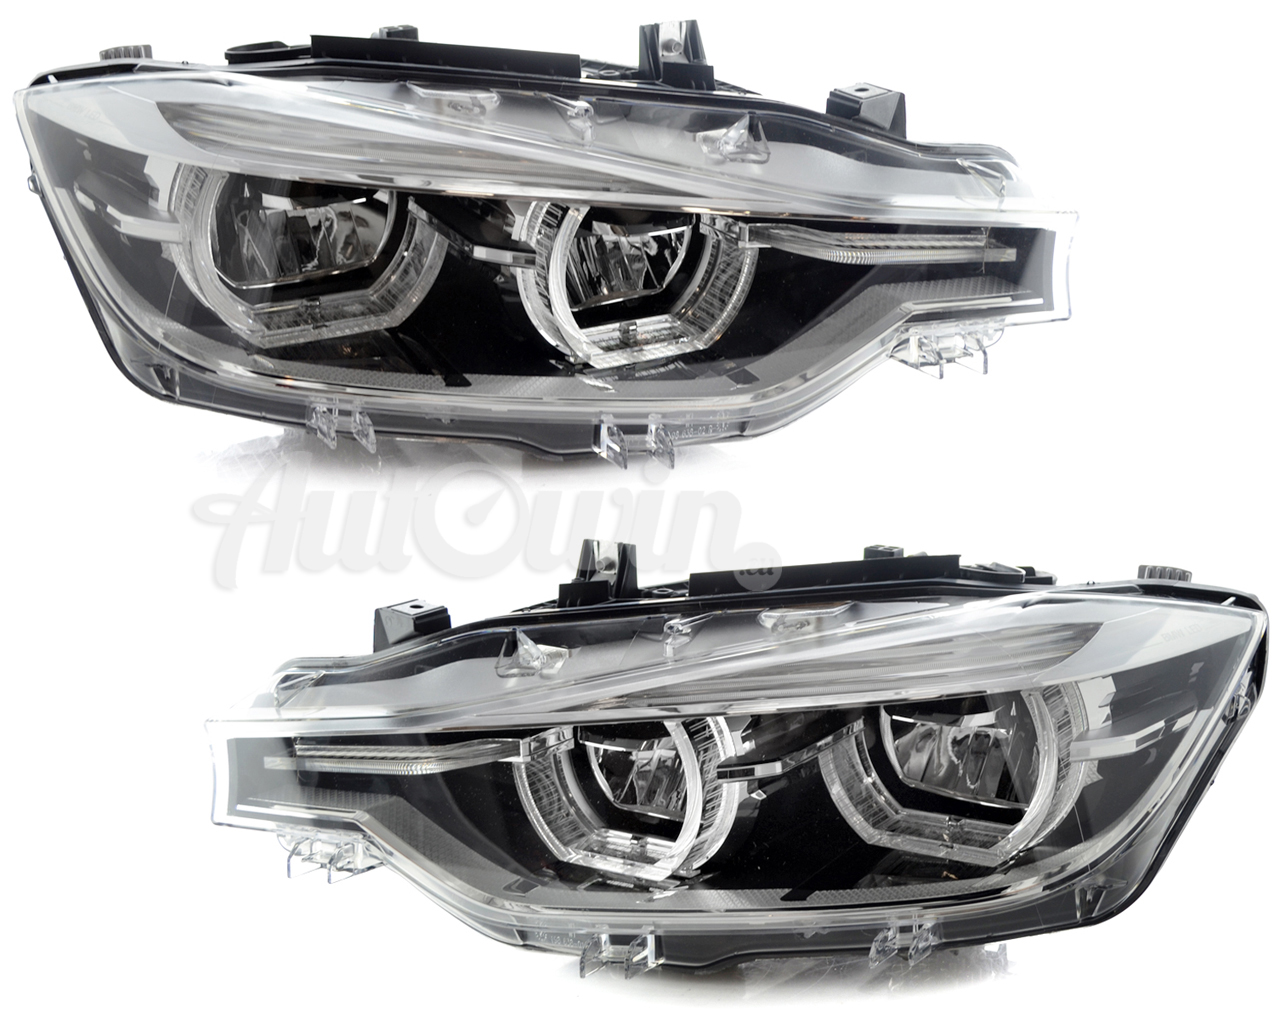 test iihs series in s and showthread bmwusa headlights response marginal bmw forums safety score